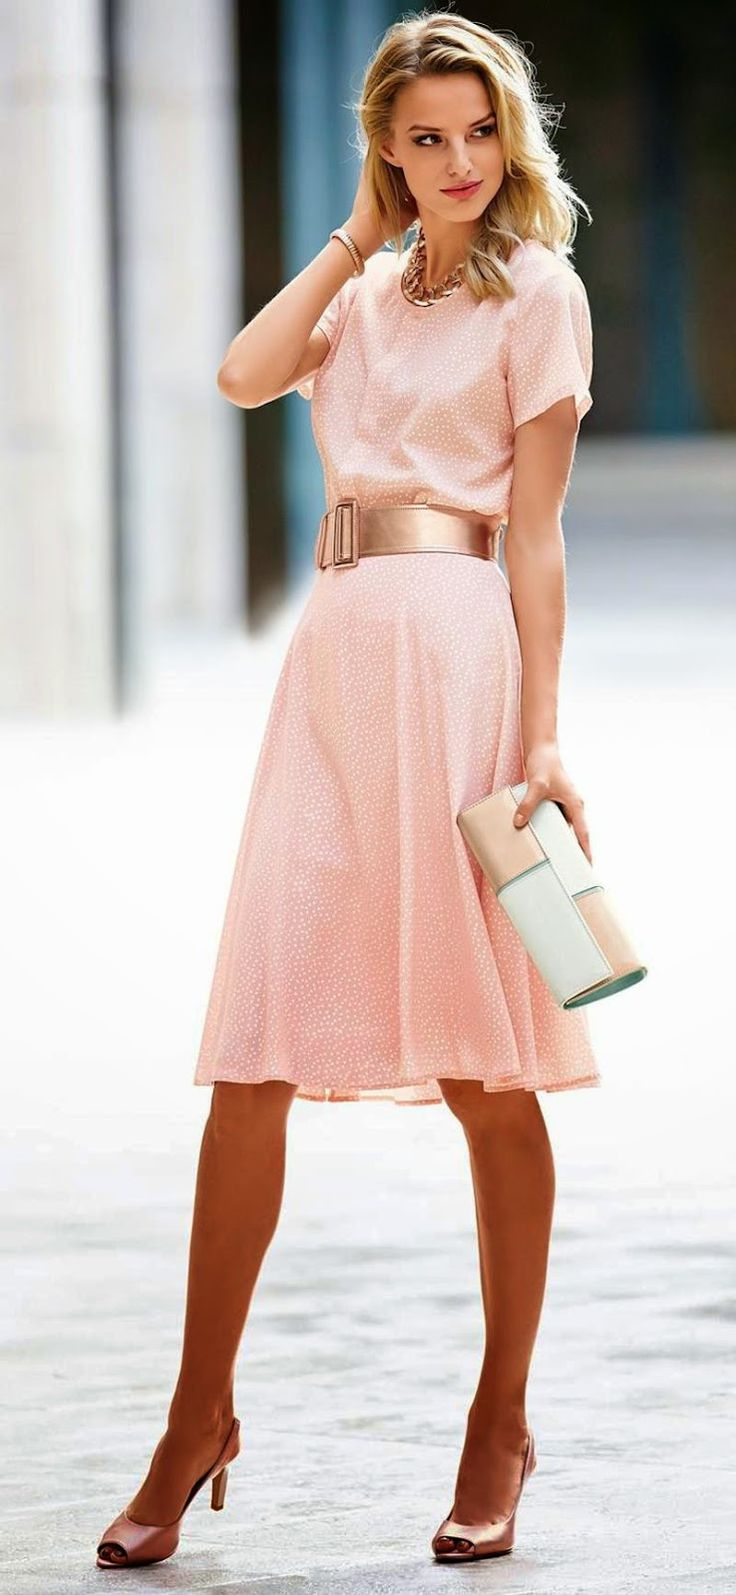 MADELEINE POWDER ROSE Silk skirt.... Love everything about this entire outfit and want it terribly!